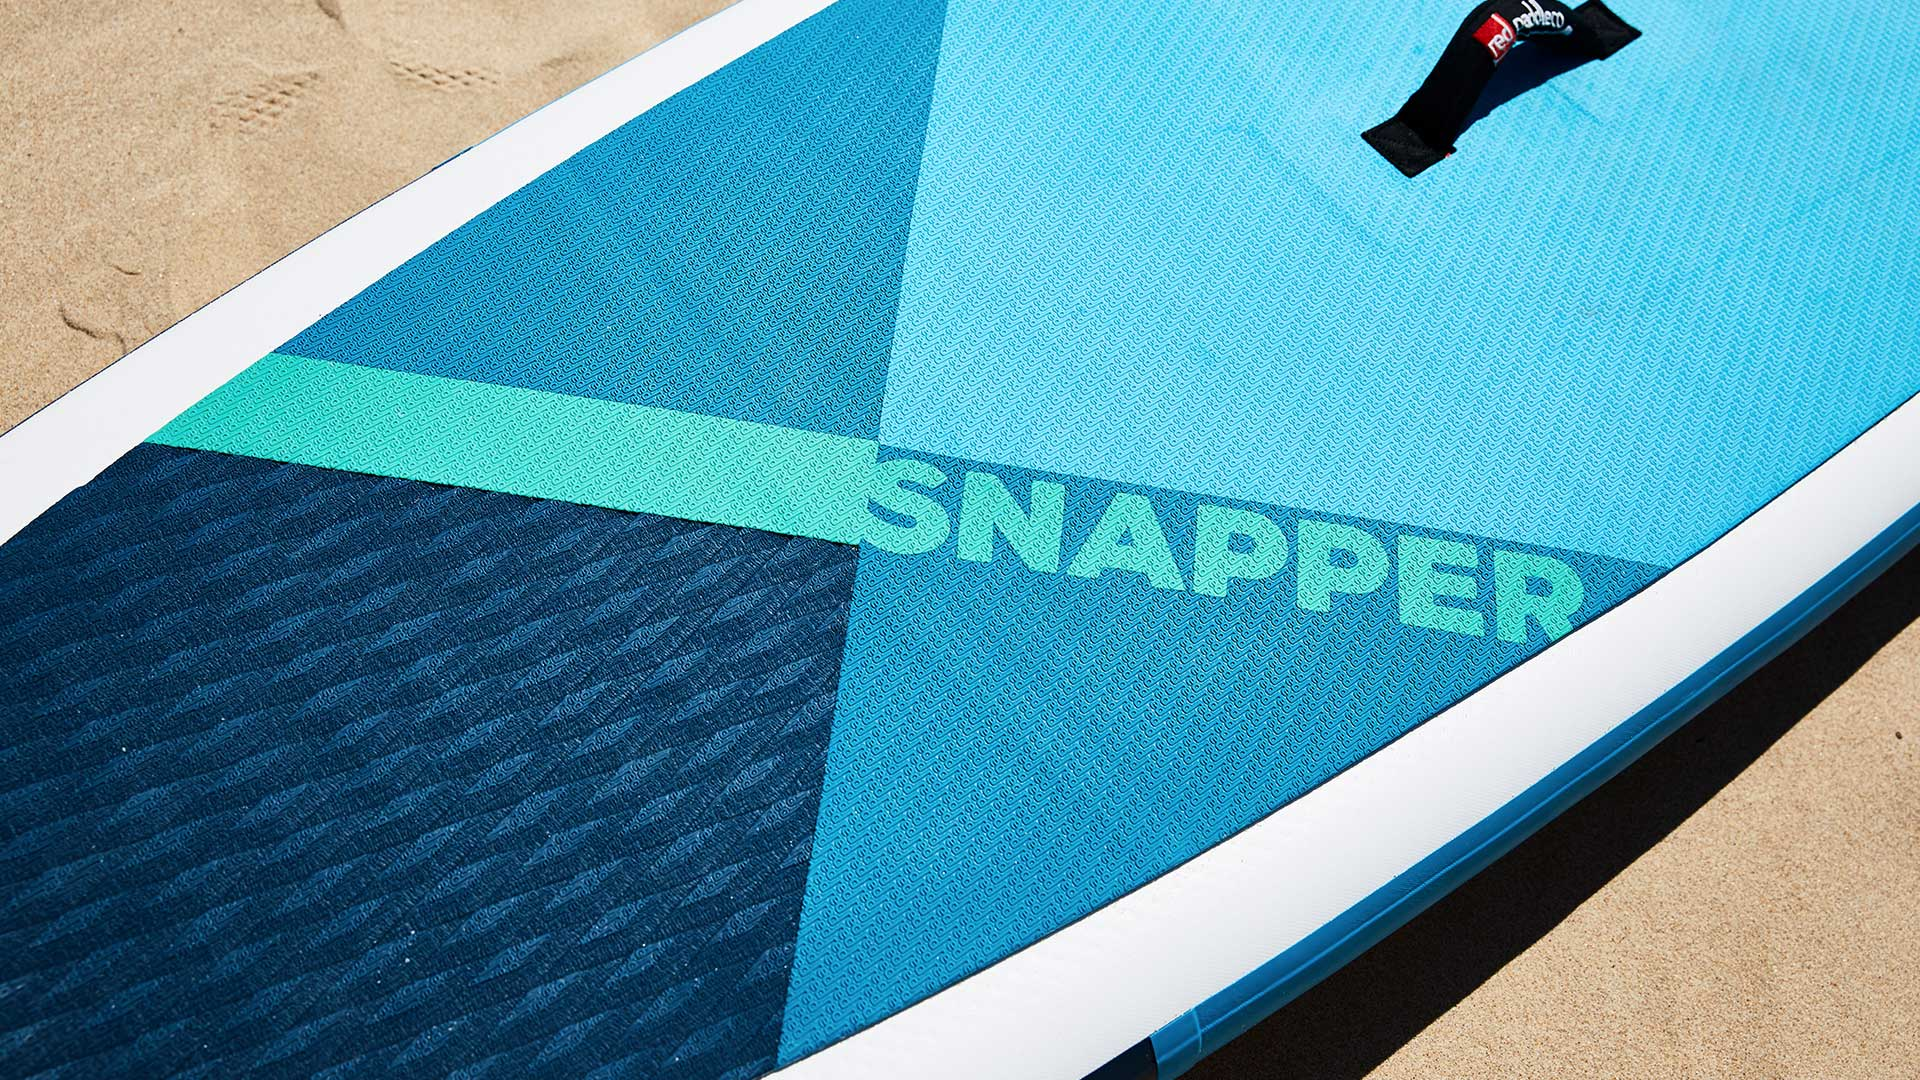 redpaddleco-94-snapper-inflatable-paddle-board-desktop-gallery-deckpad